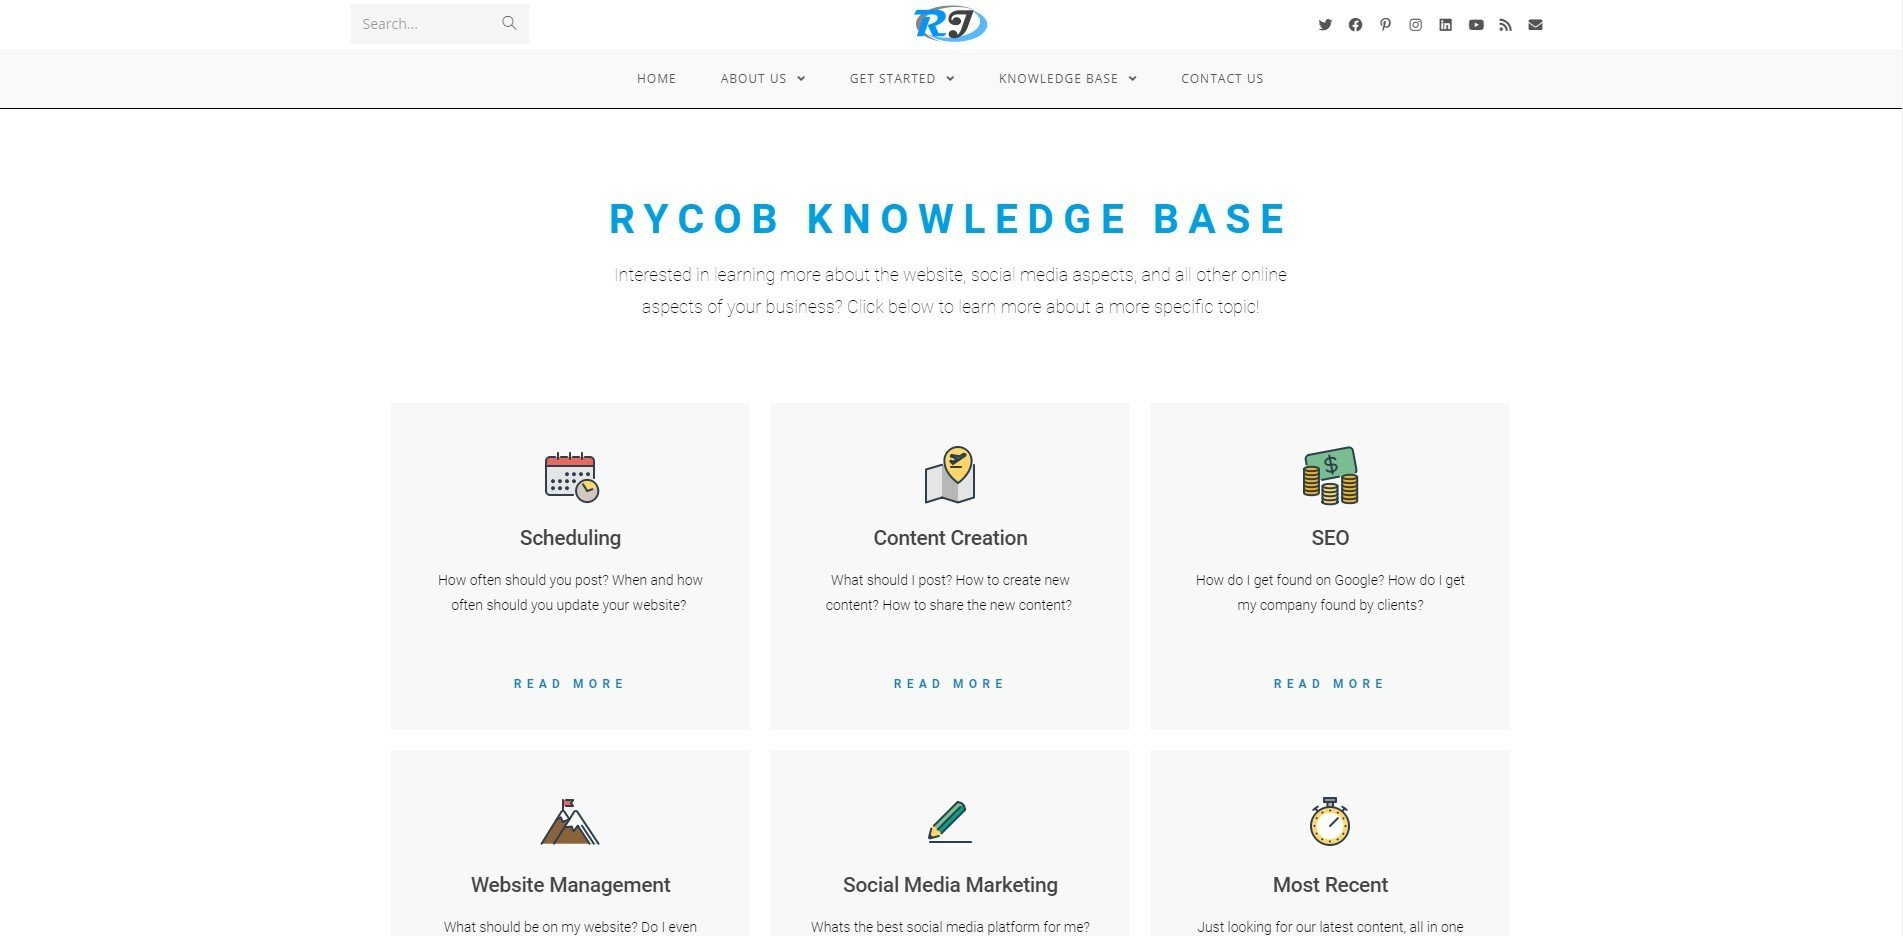 Rycob Media Knowledge Base Page